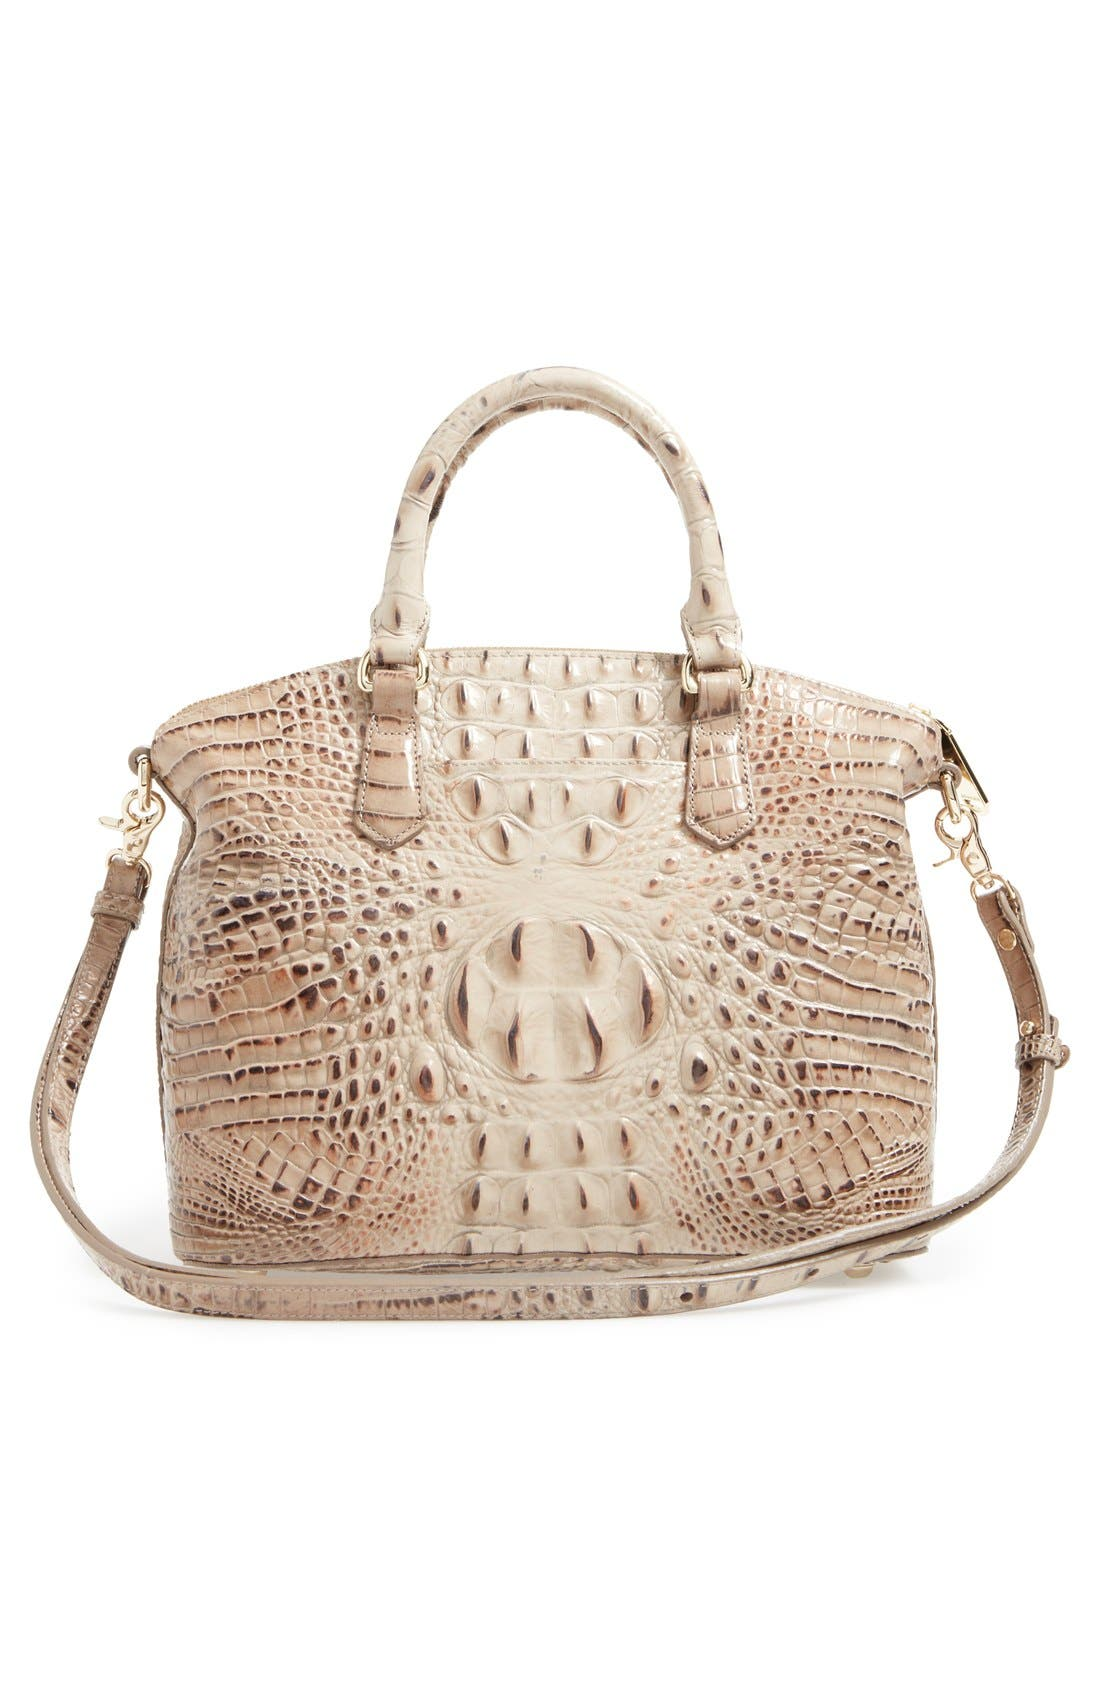 'Medium Duxbury' Croc Embossed Leather Satchel,                             Alternate thumbnail 97, color,